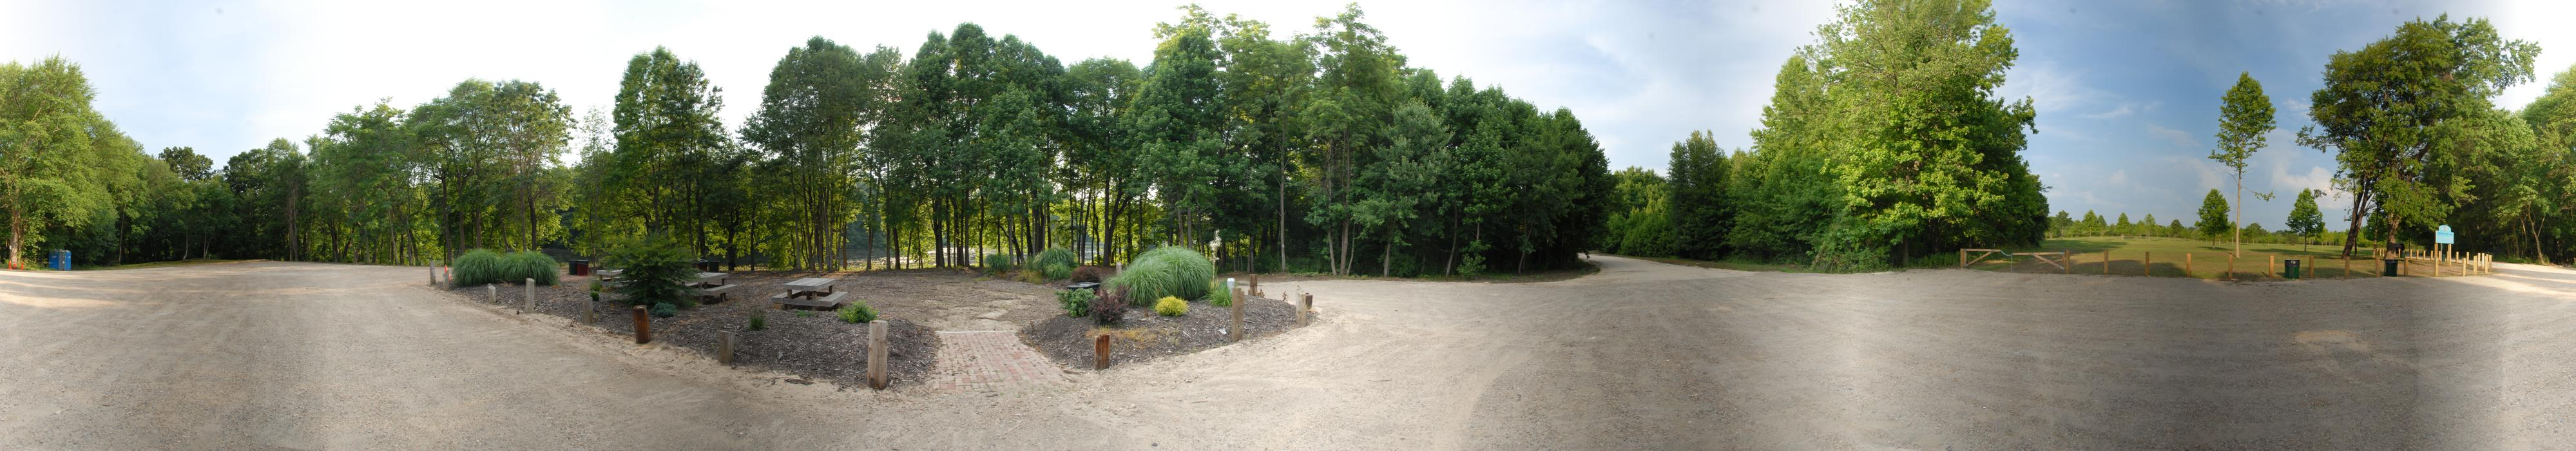 panoramic, parking lot, trees, woods, picnic benches, garden